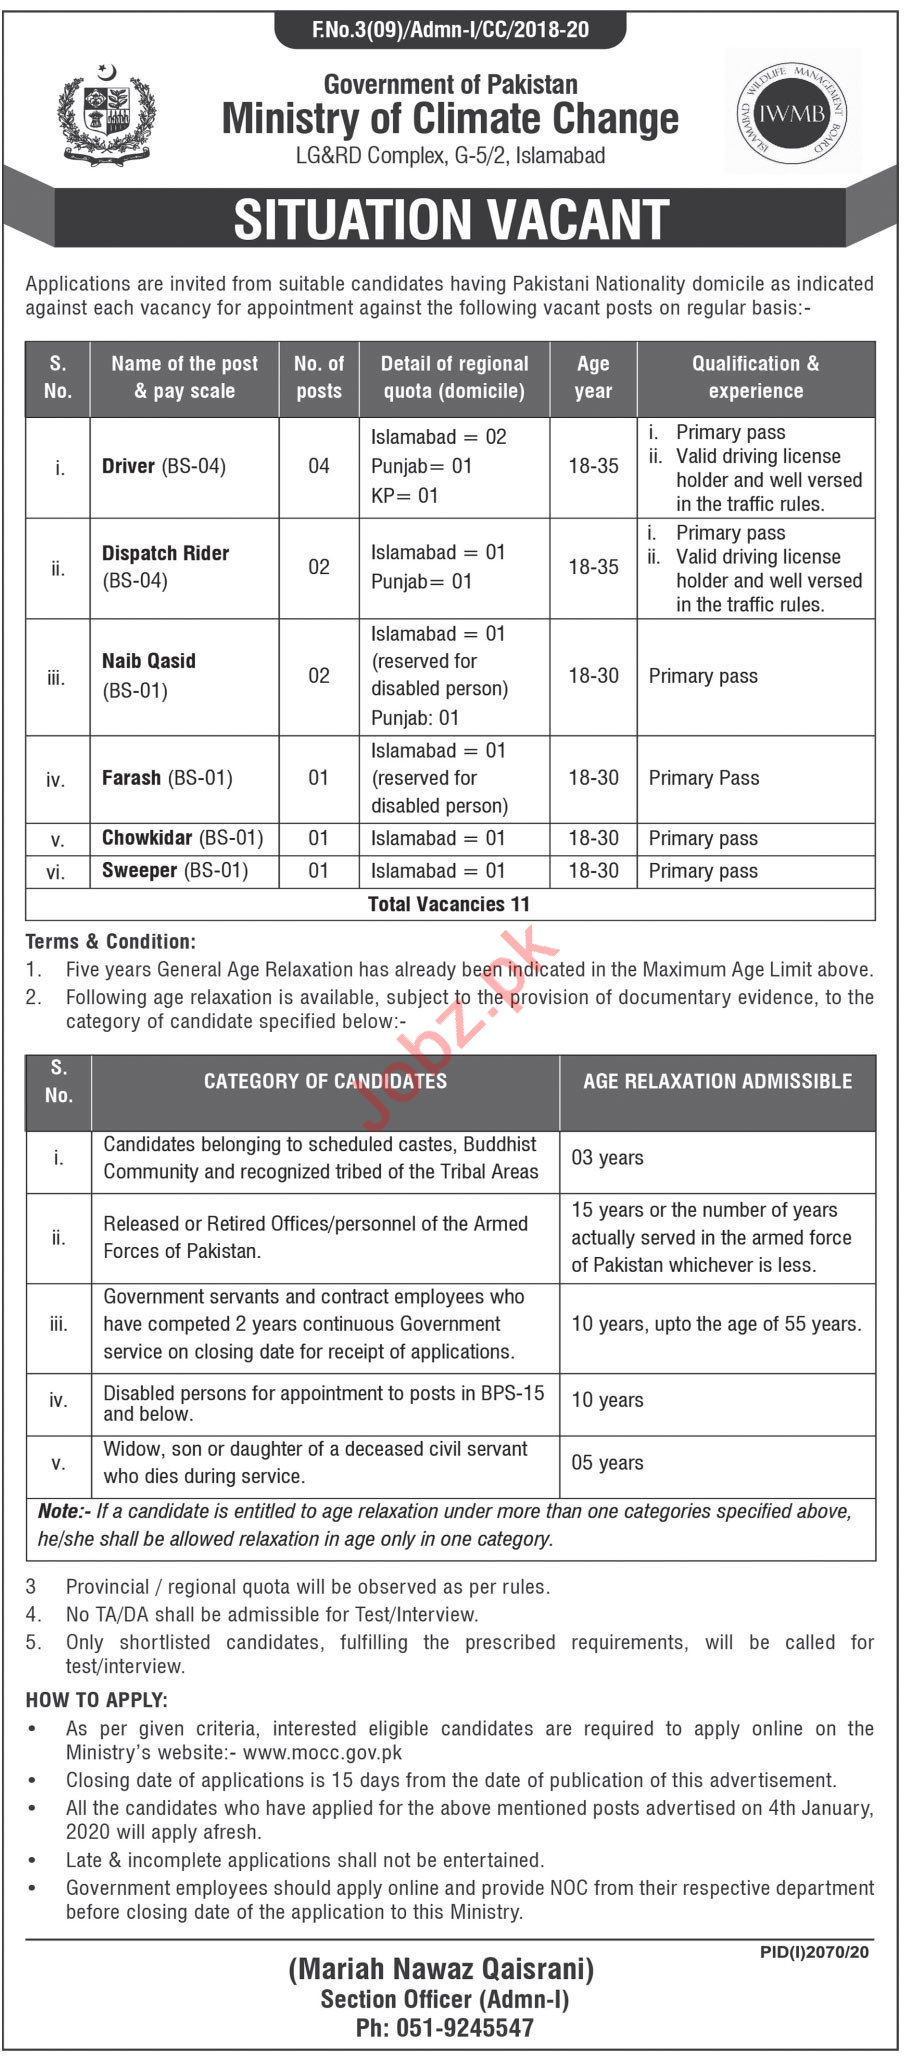 Ministry of Climate Change LG&RD Islamabad Jobs 2020